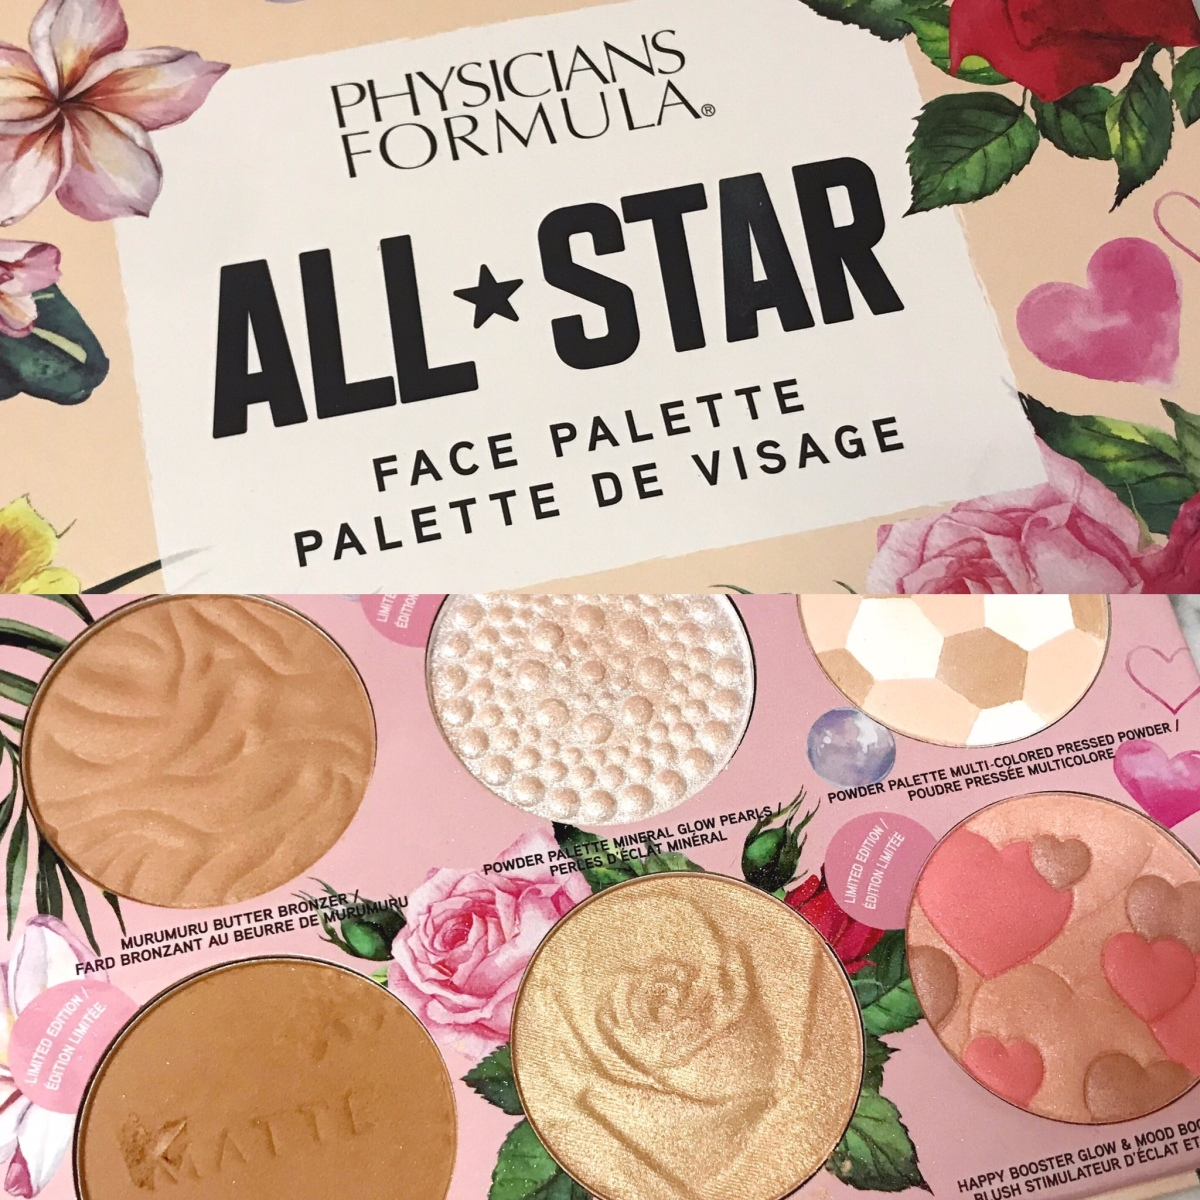 Physicians Formula All-Star Face Palette | Review +Swatches